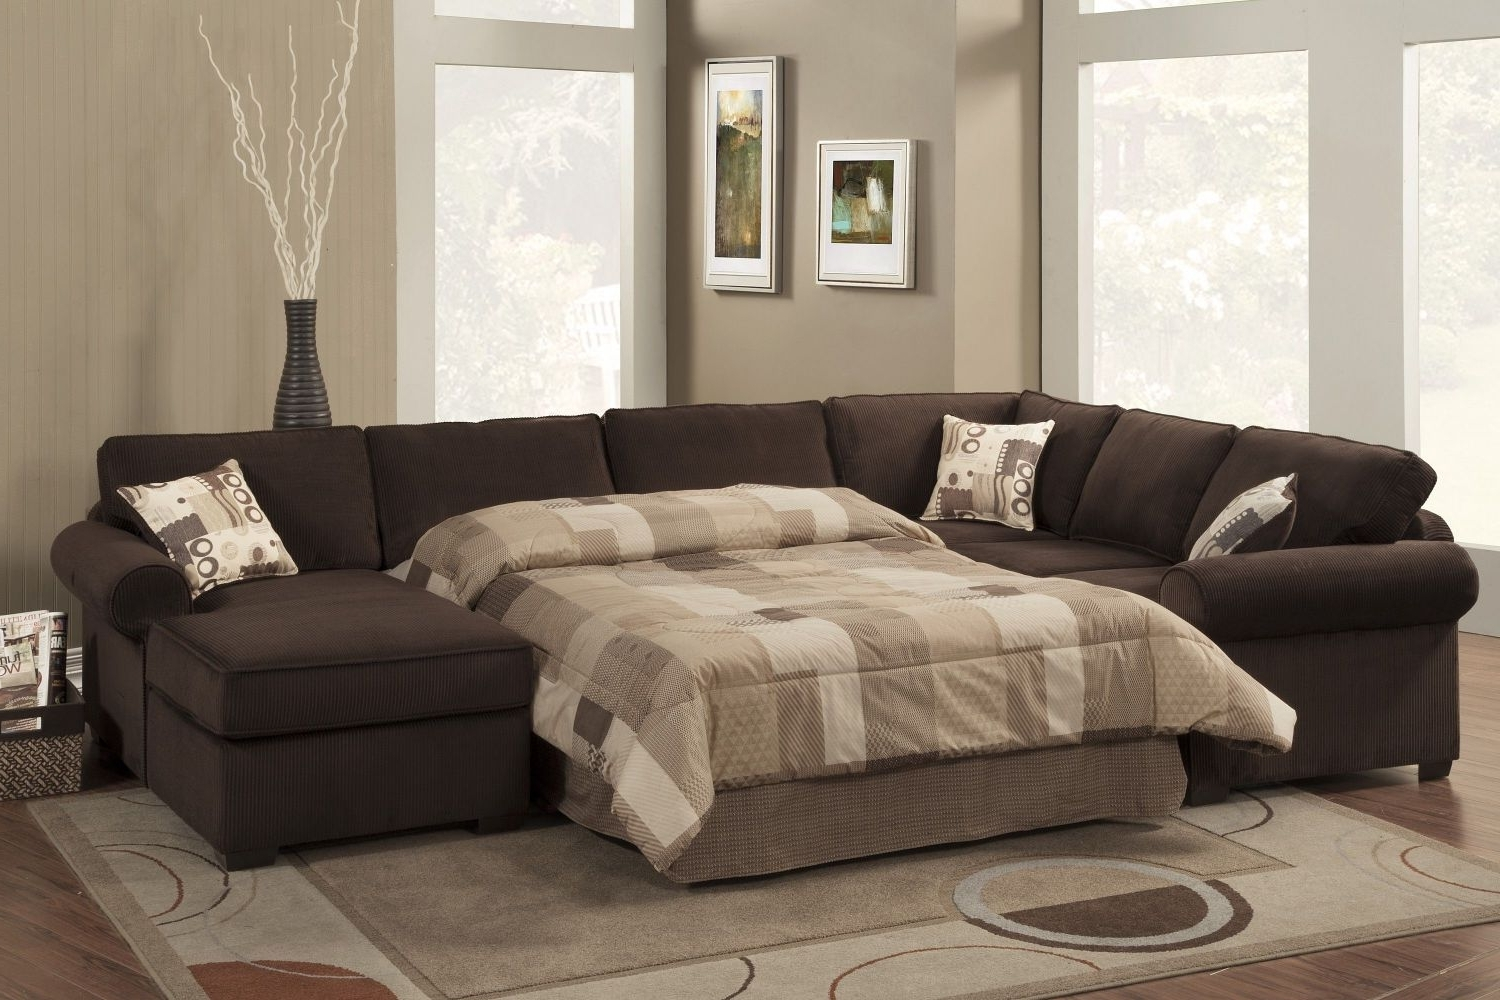 Unbelievable Reversible Sectional Sofa Chaise Together With Cheap Within Latest Havertys Sectional Sofas (View 13 of 15)